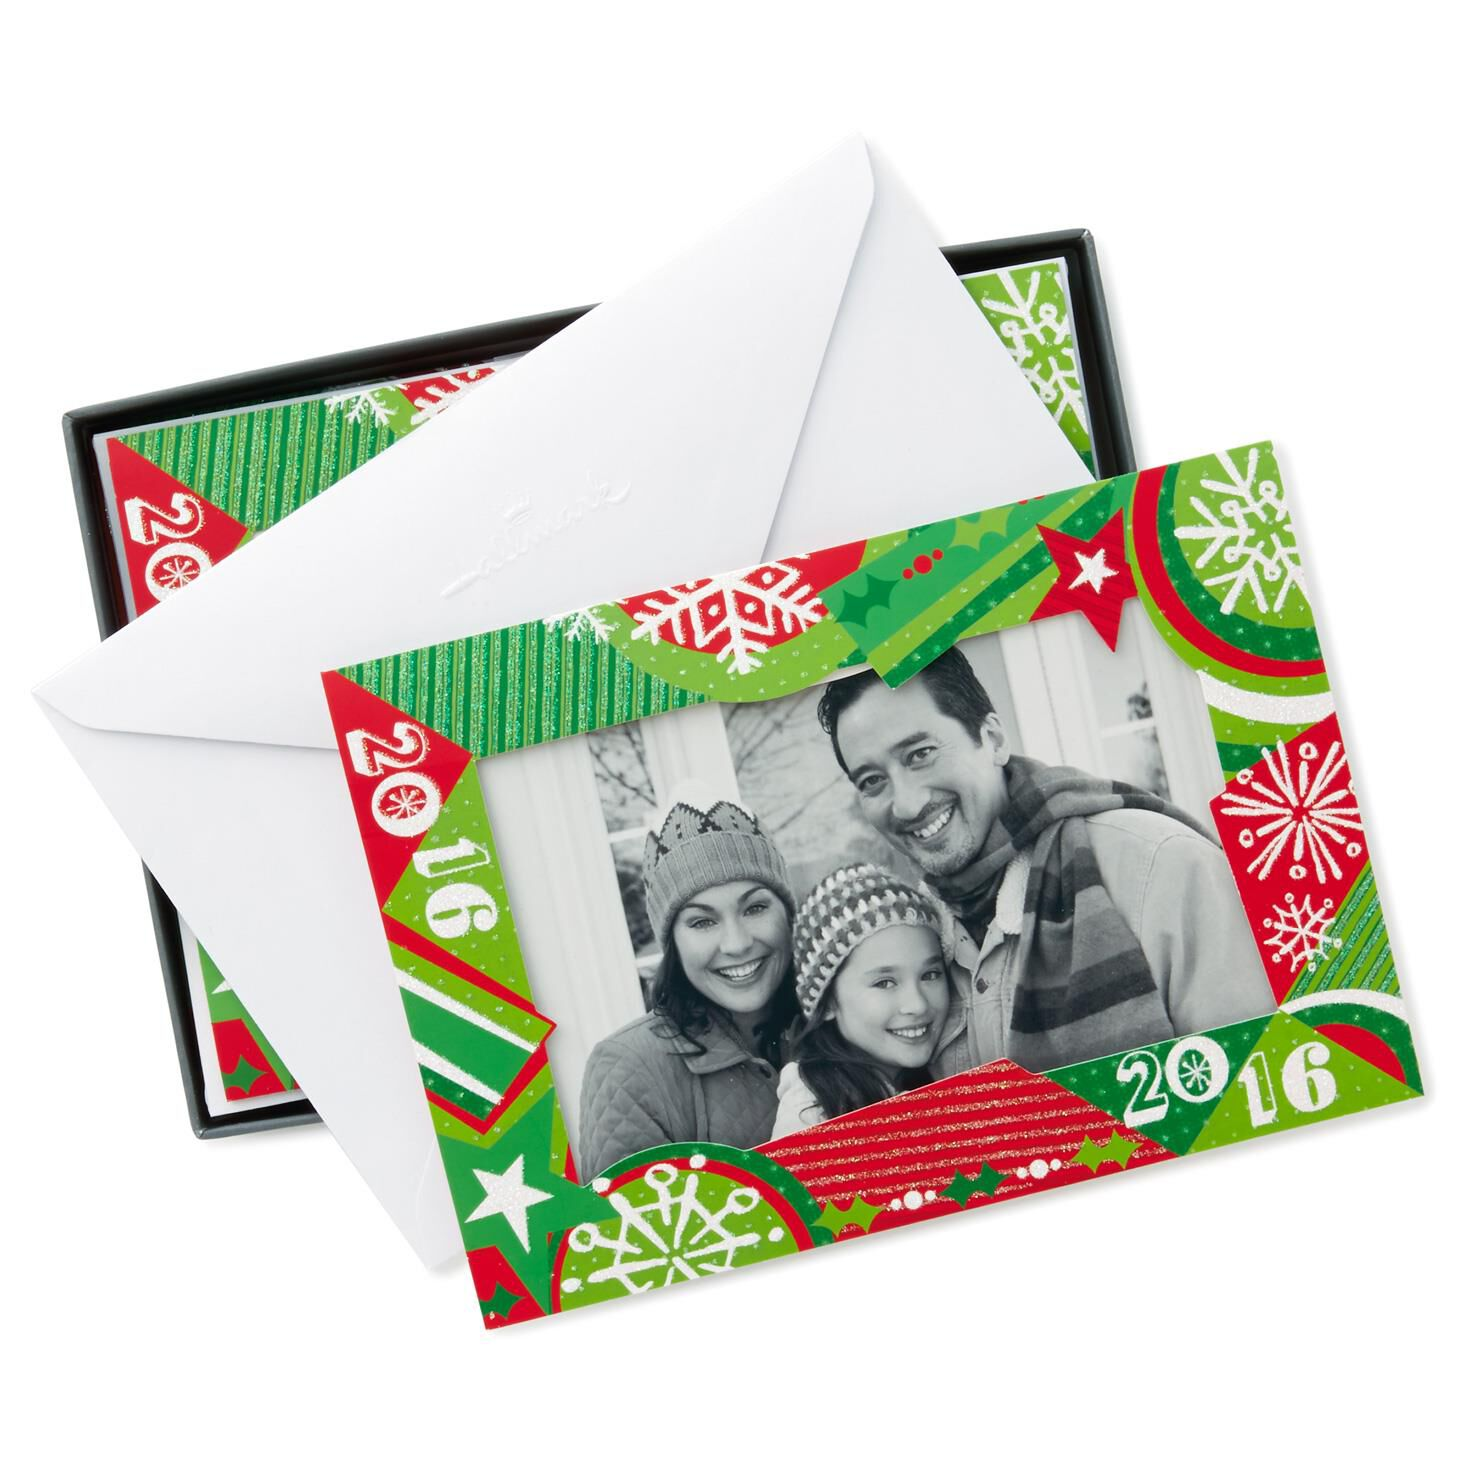 2016 Photo Frame Christmas Cards Box Of 12 Boxed Cards